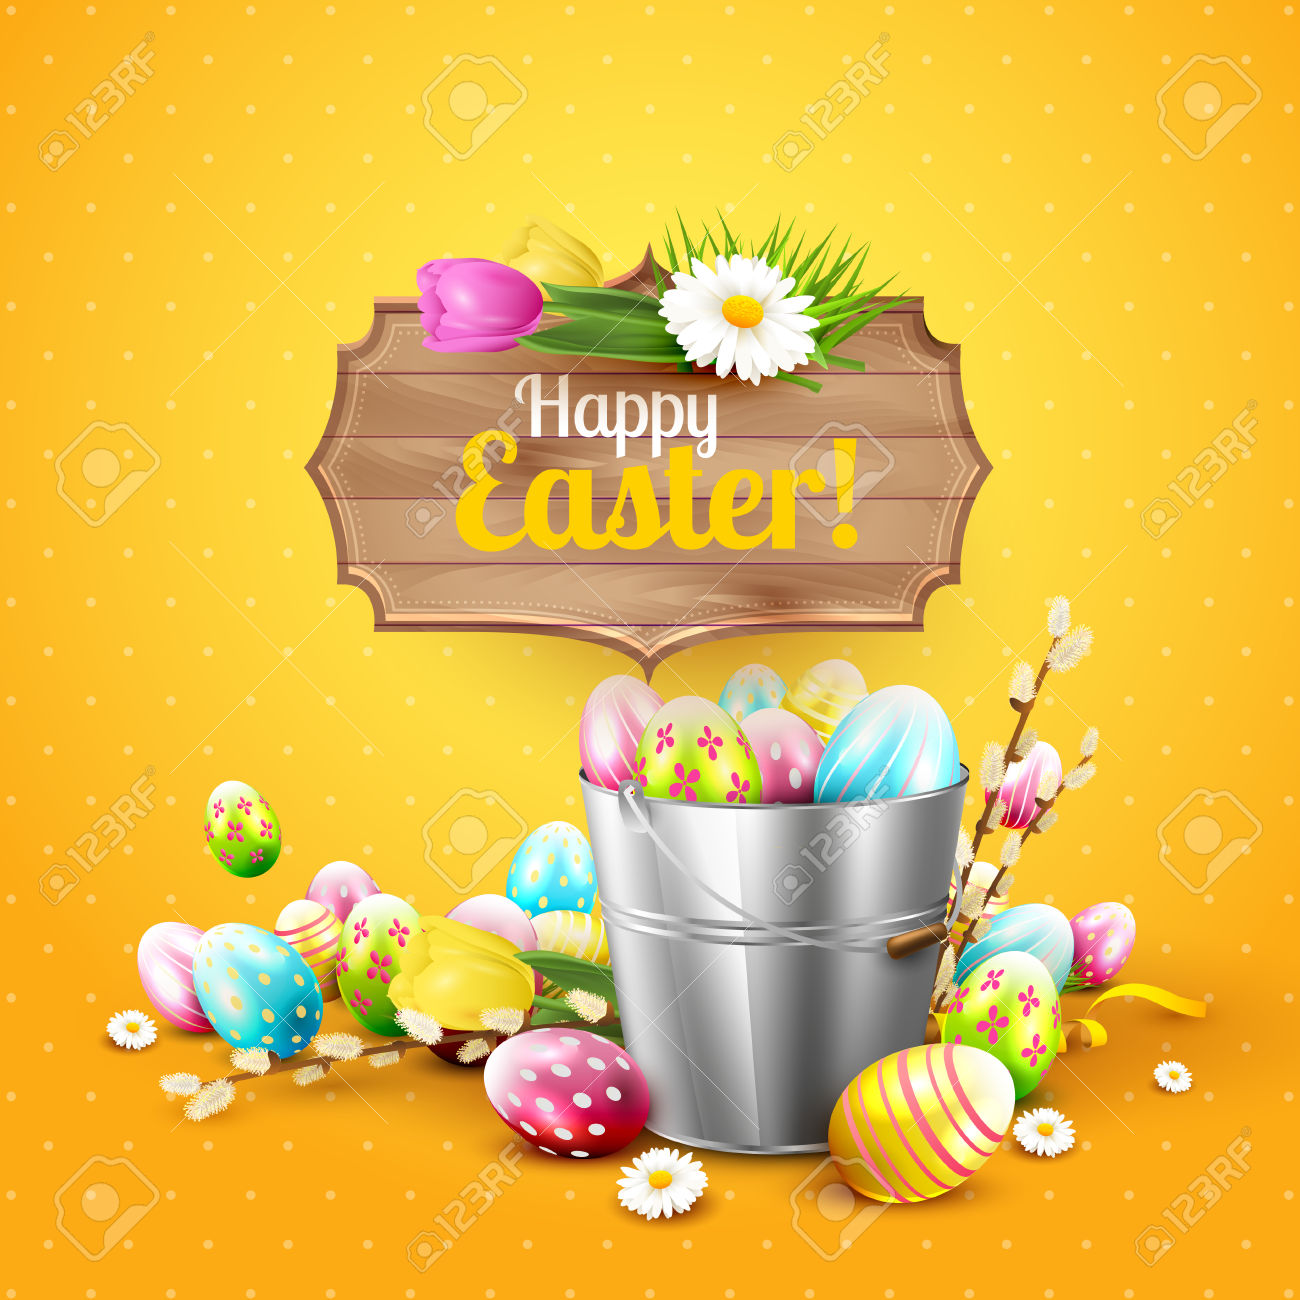 Easter Greeting Card With Flowers And Colorful Eggs In The Bucket.